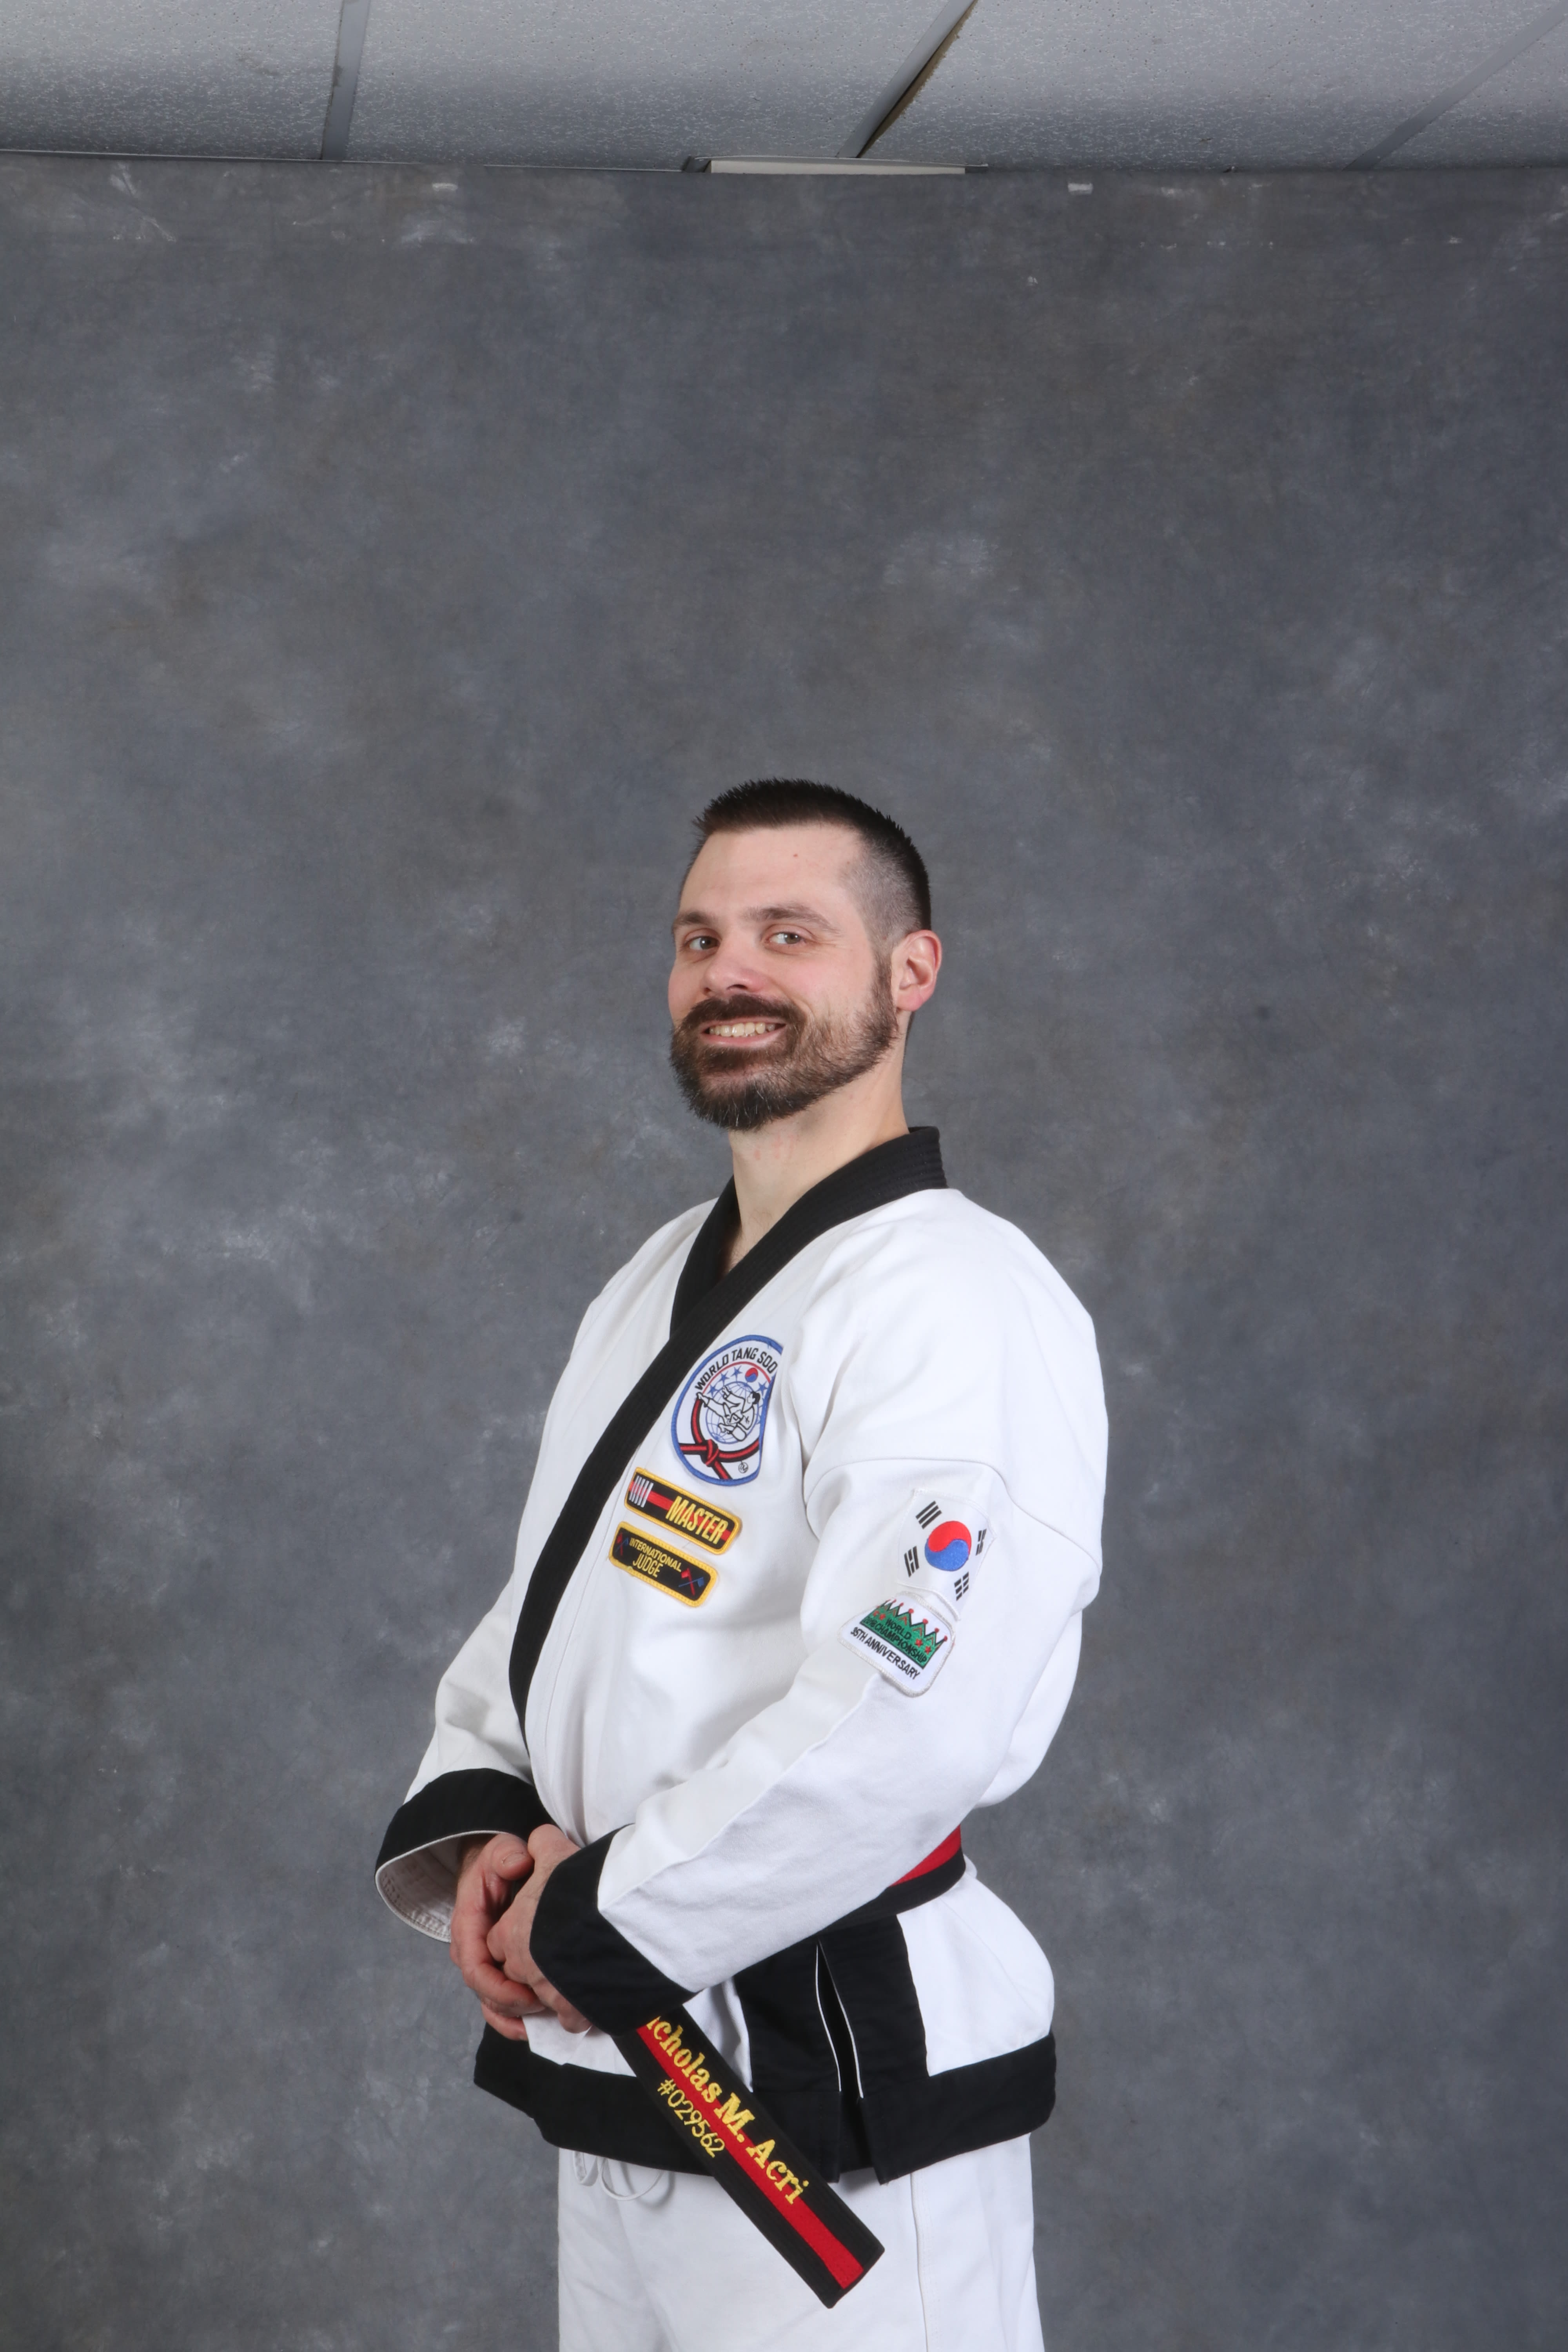 Master Nicholas Acri in Kingston - Jae Nam Training Academy